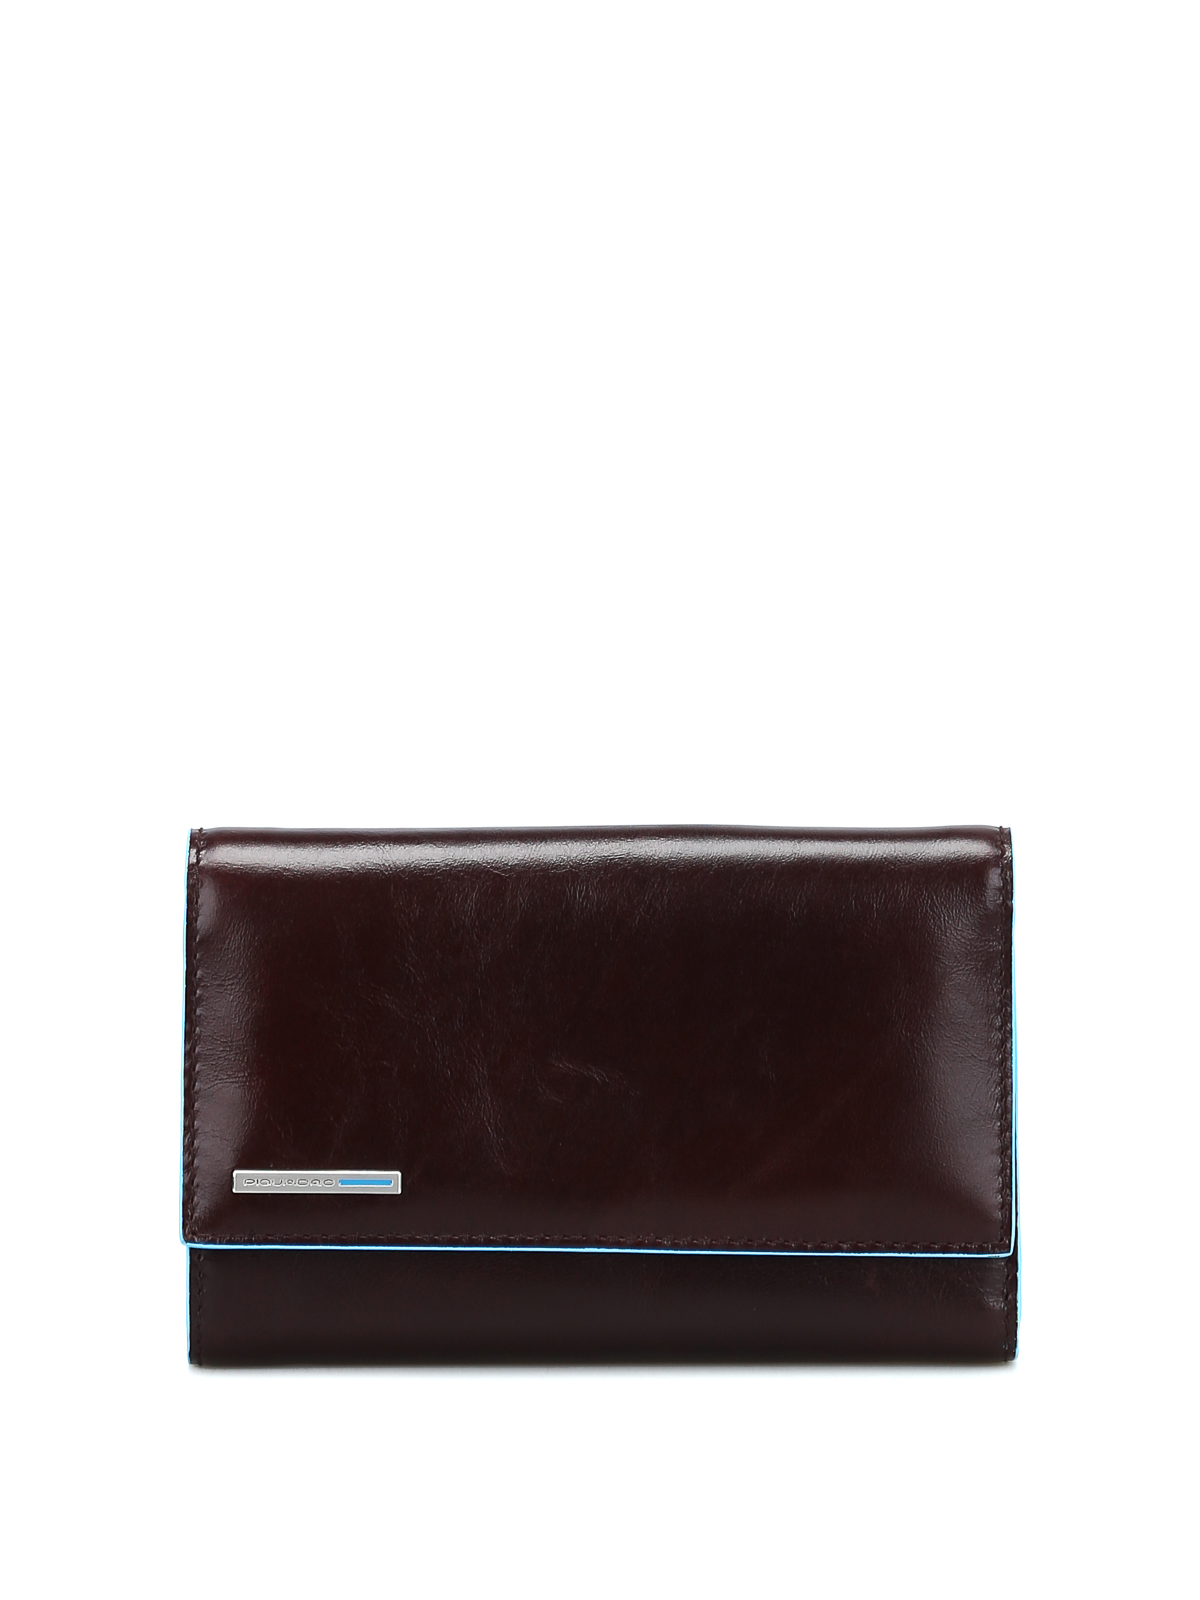 Piquadro Mahogany Leather Wallet In Brown